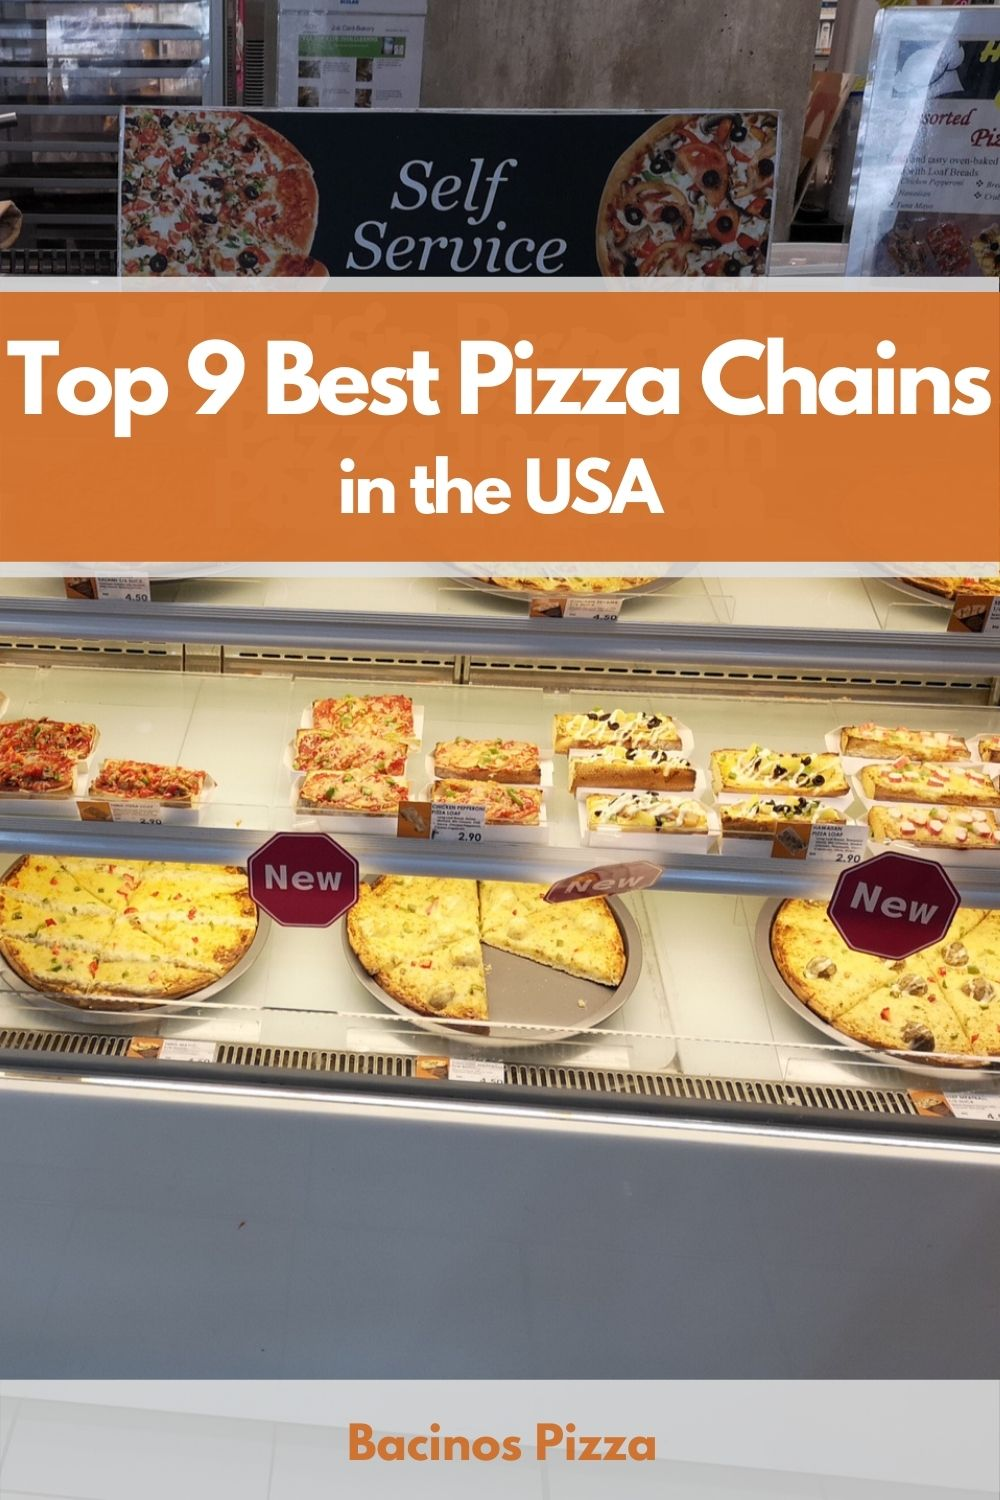 Top 9 Best Pizza Chains in the USA pin